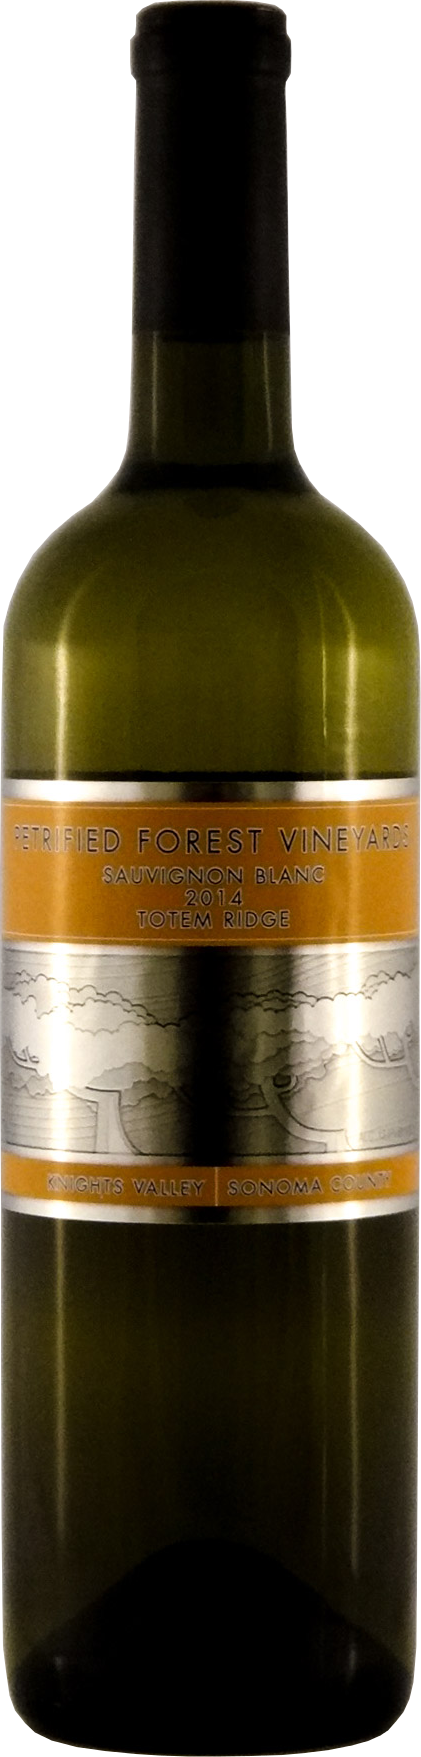 2016 Petrified Forest Vineyards Sauvignon Blanc - Qorkz